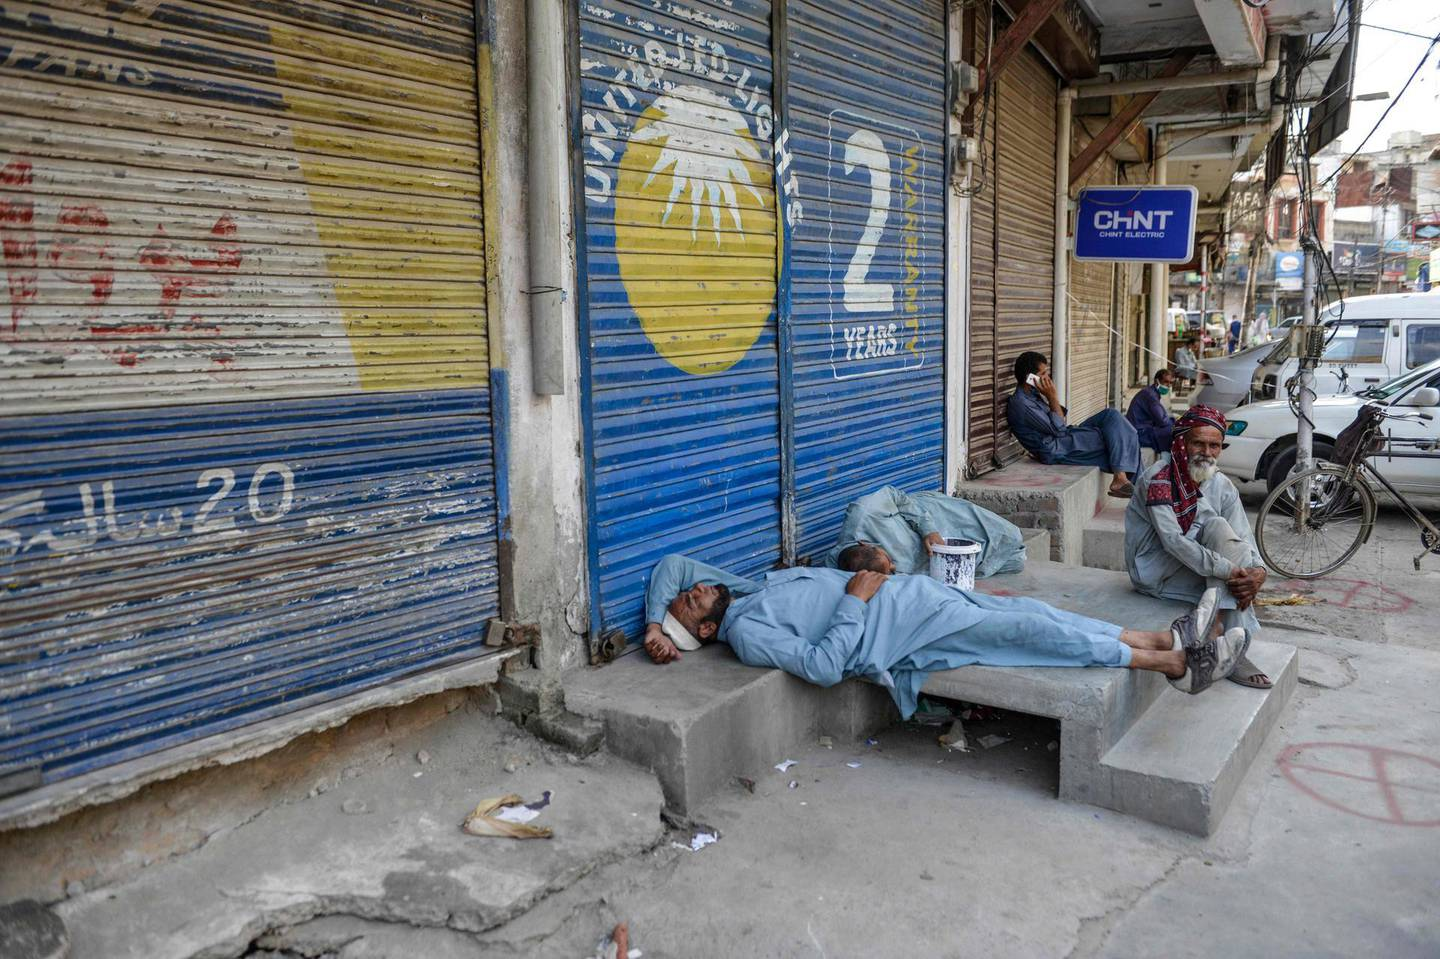 Labourers sleep near a market closed for the week-end in Rawalpindi on June 6, 2020.            / AFP / Farooq NAEEM